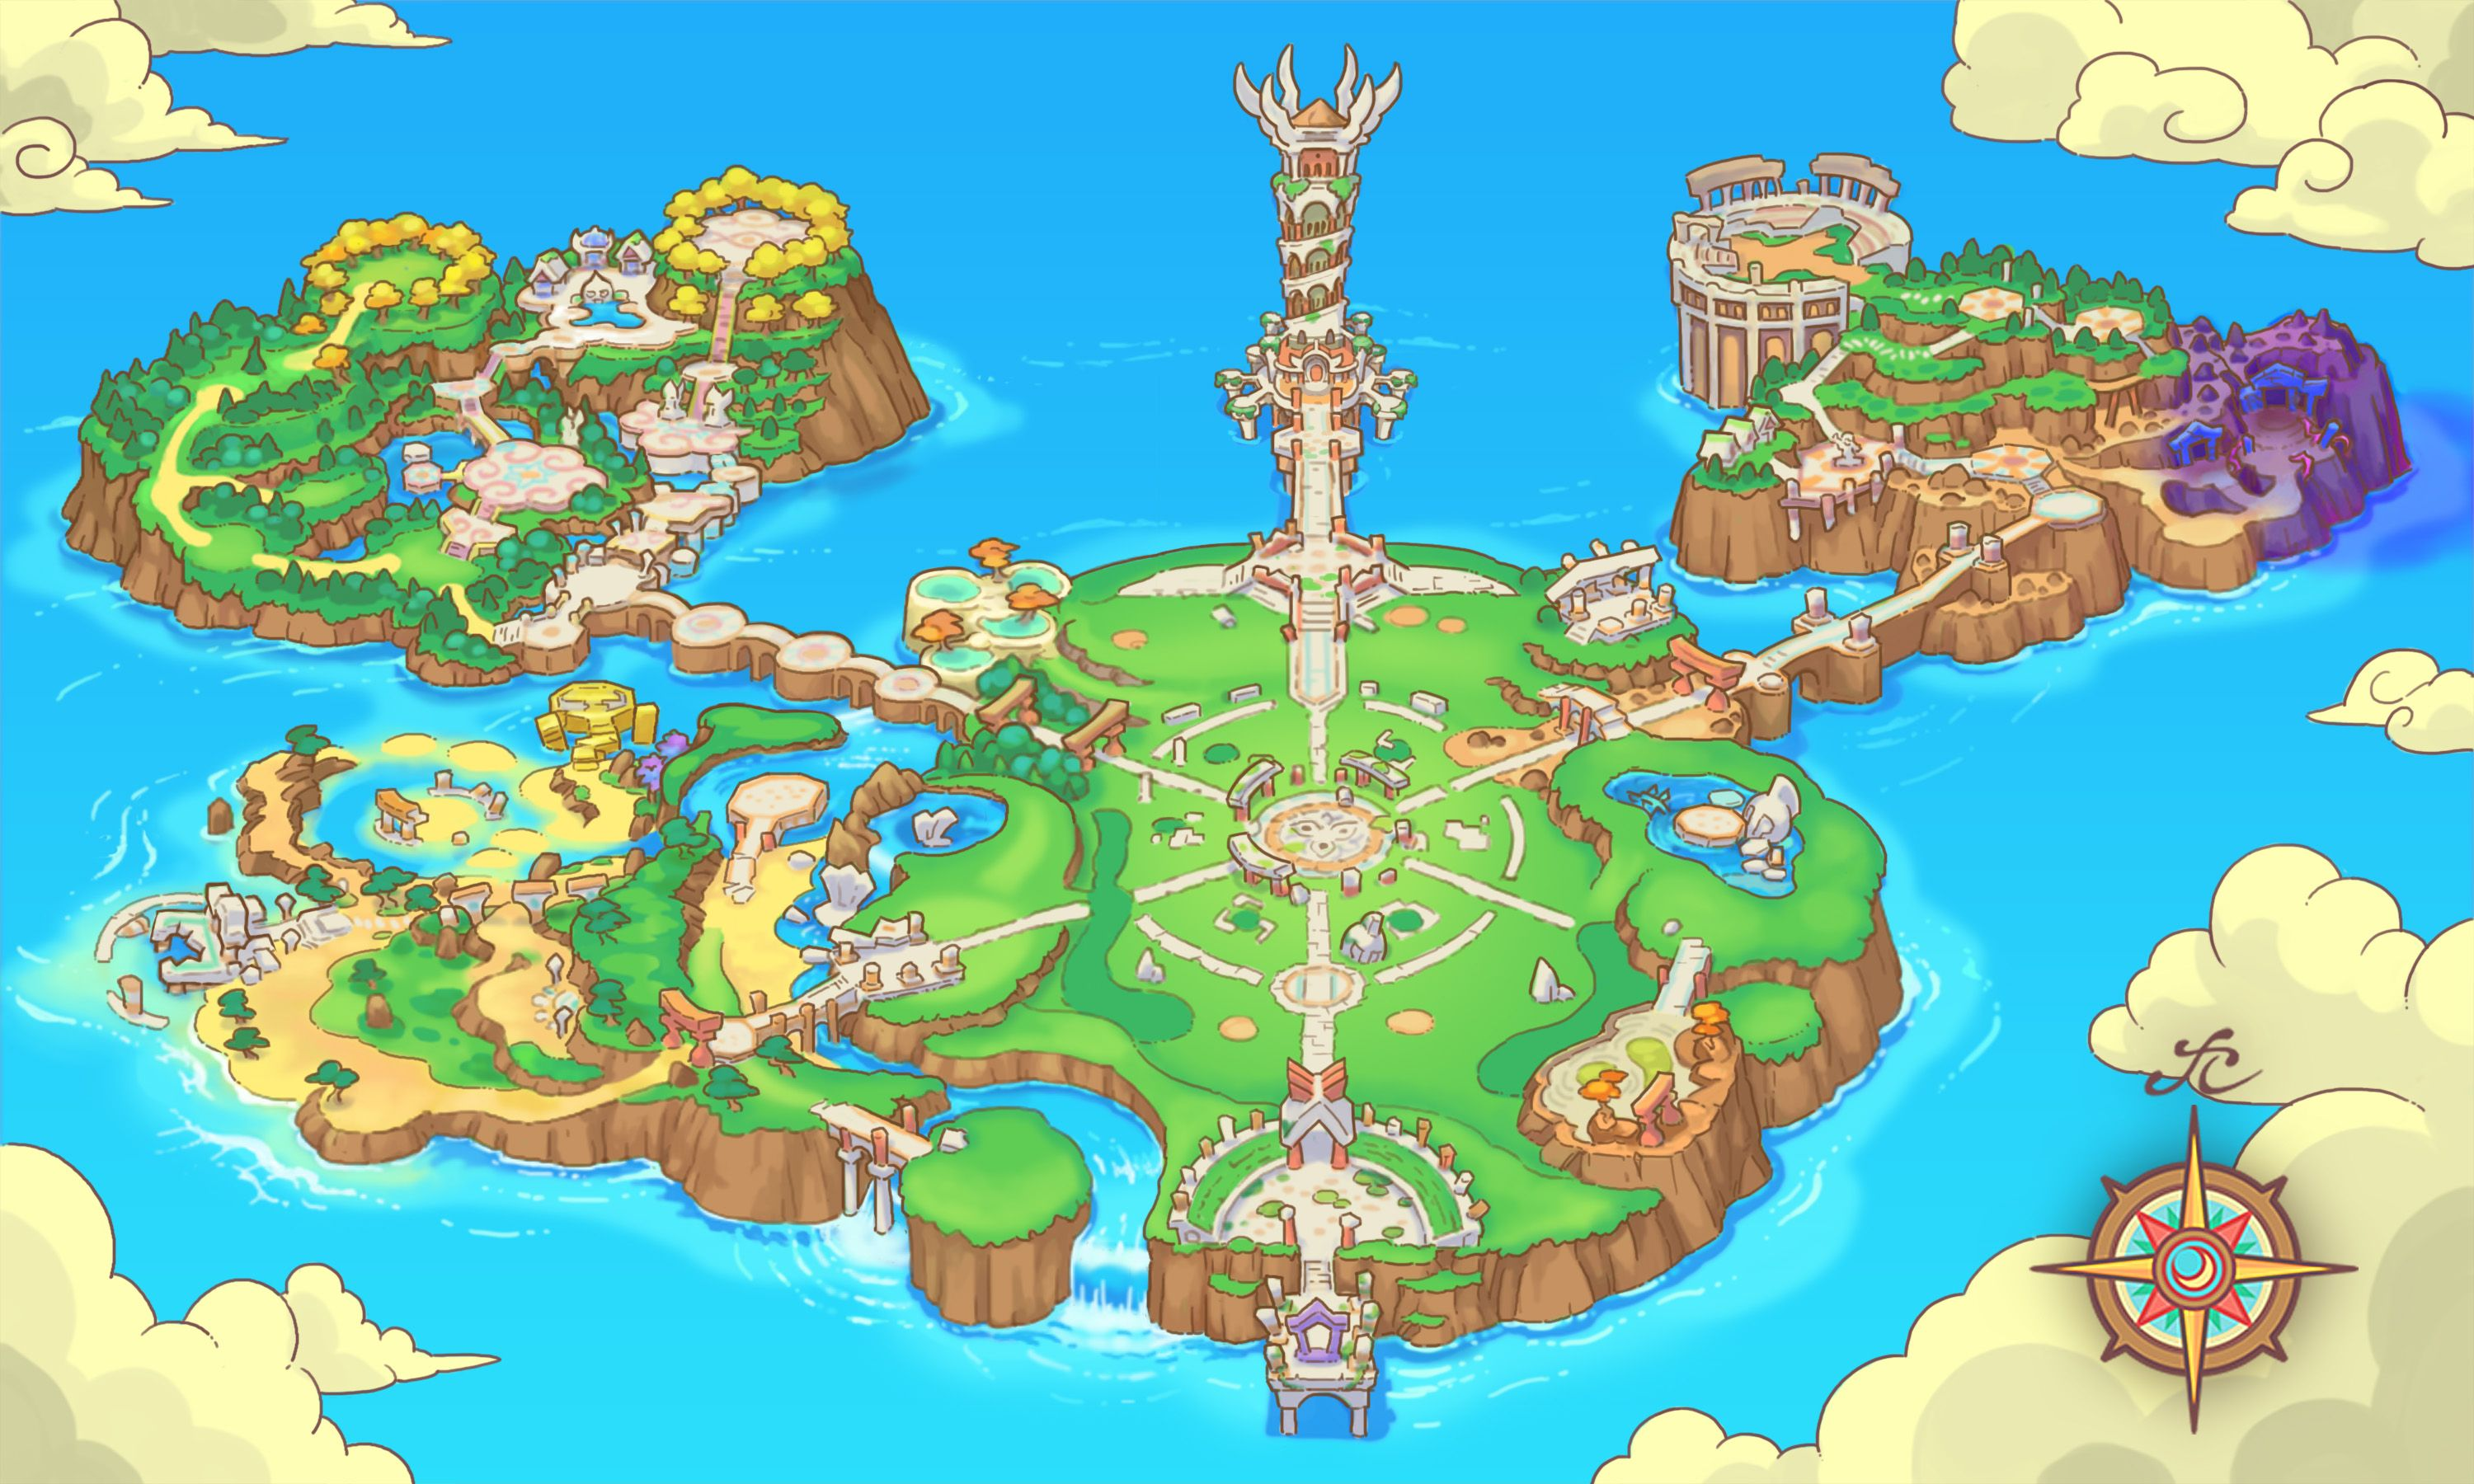 Fantasy Life World Map.Imgur The Most Awesome Images On The Internet Dnd Inspiration